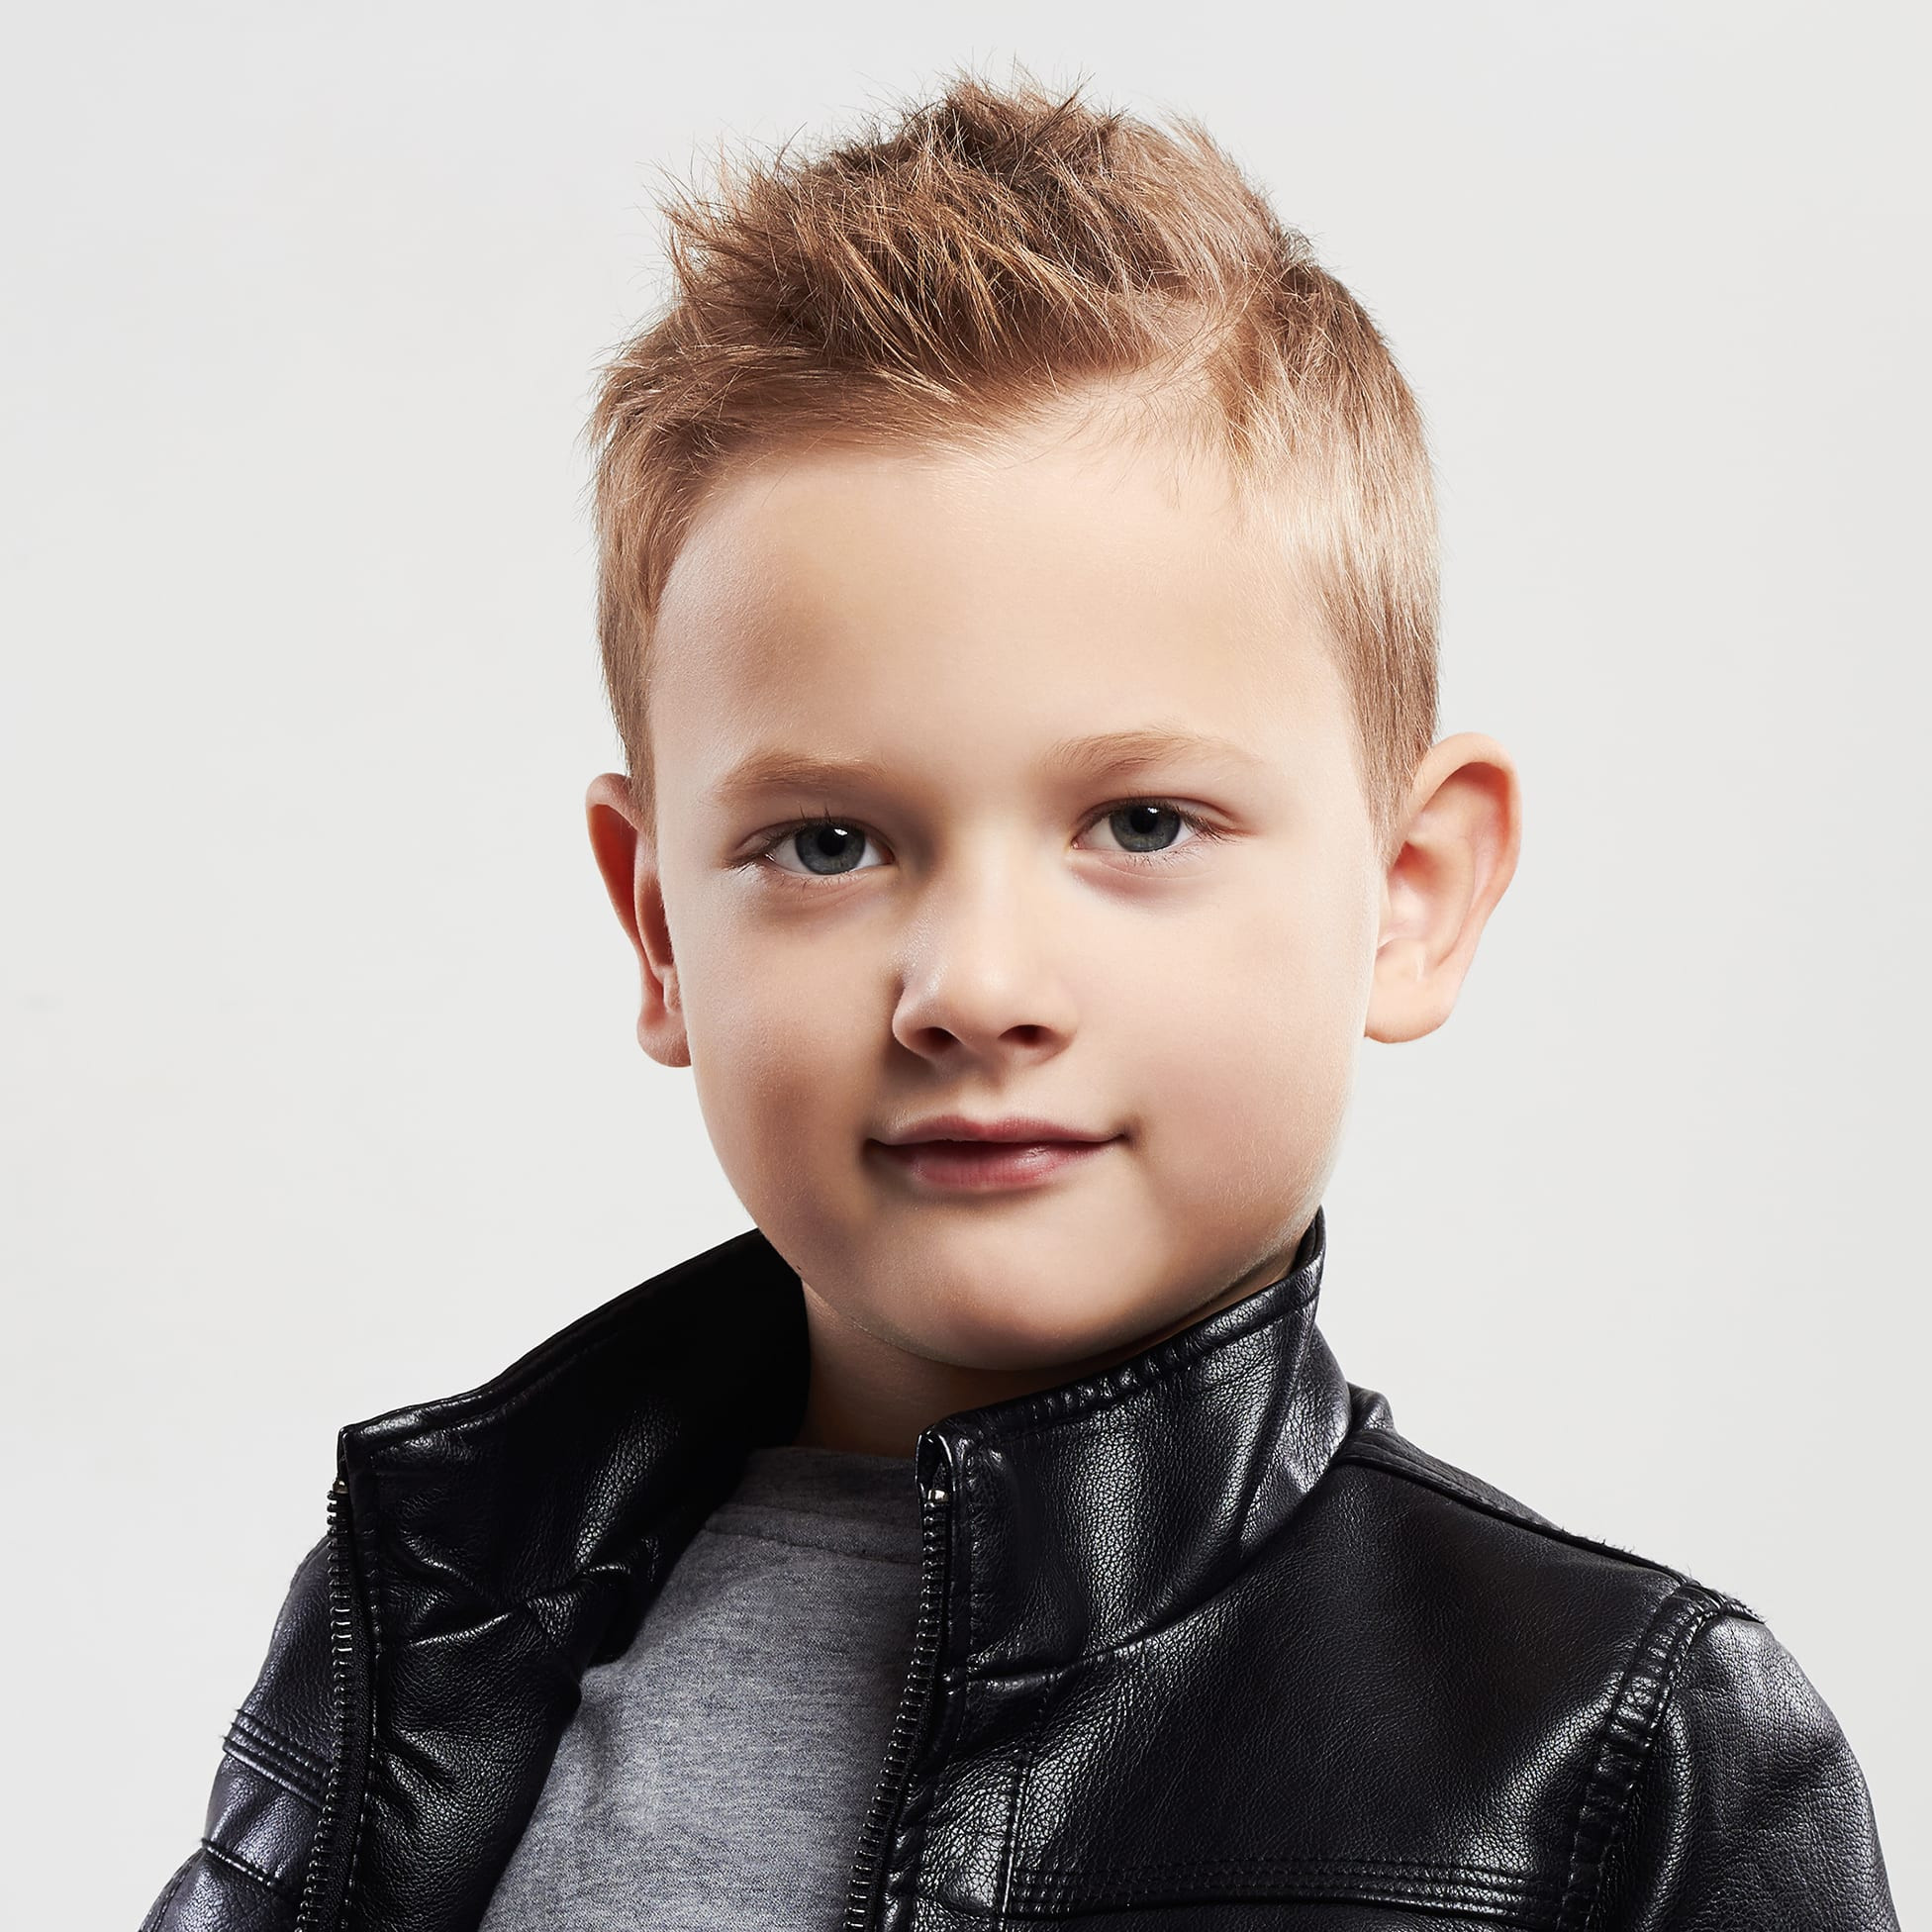 Best ideas about Boys Haircuts 2019 . Save or Pin 35 Cute Toddler Boy Haircuts Your Kids will Love Now.